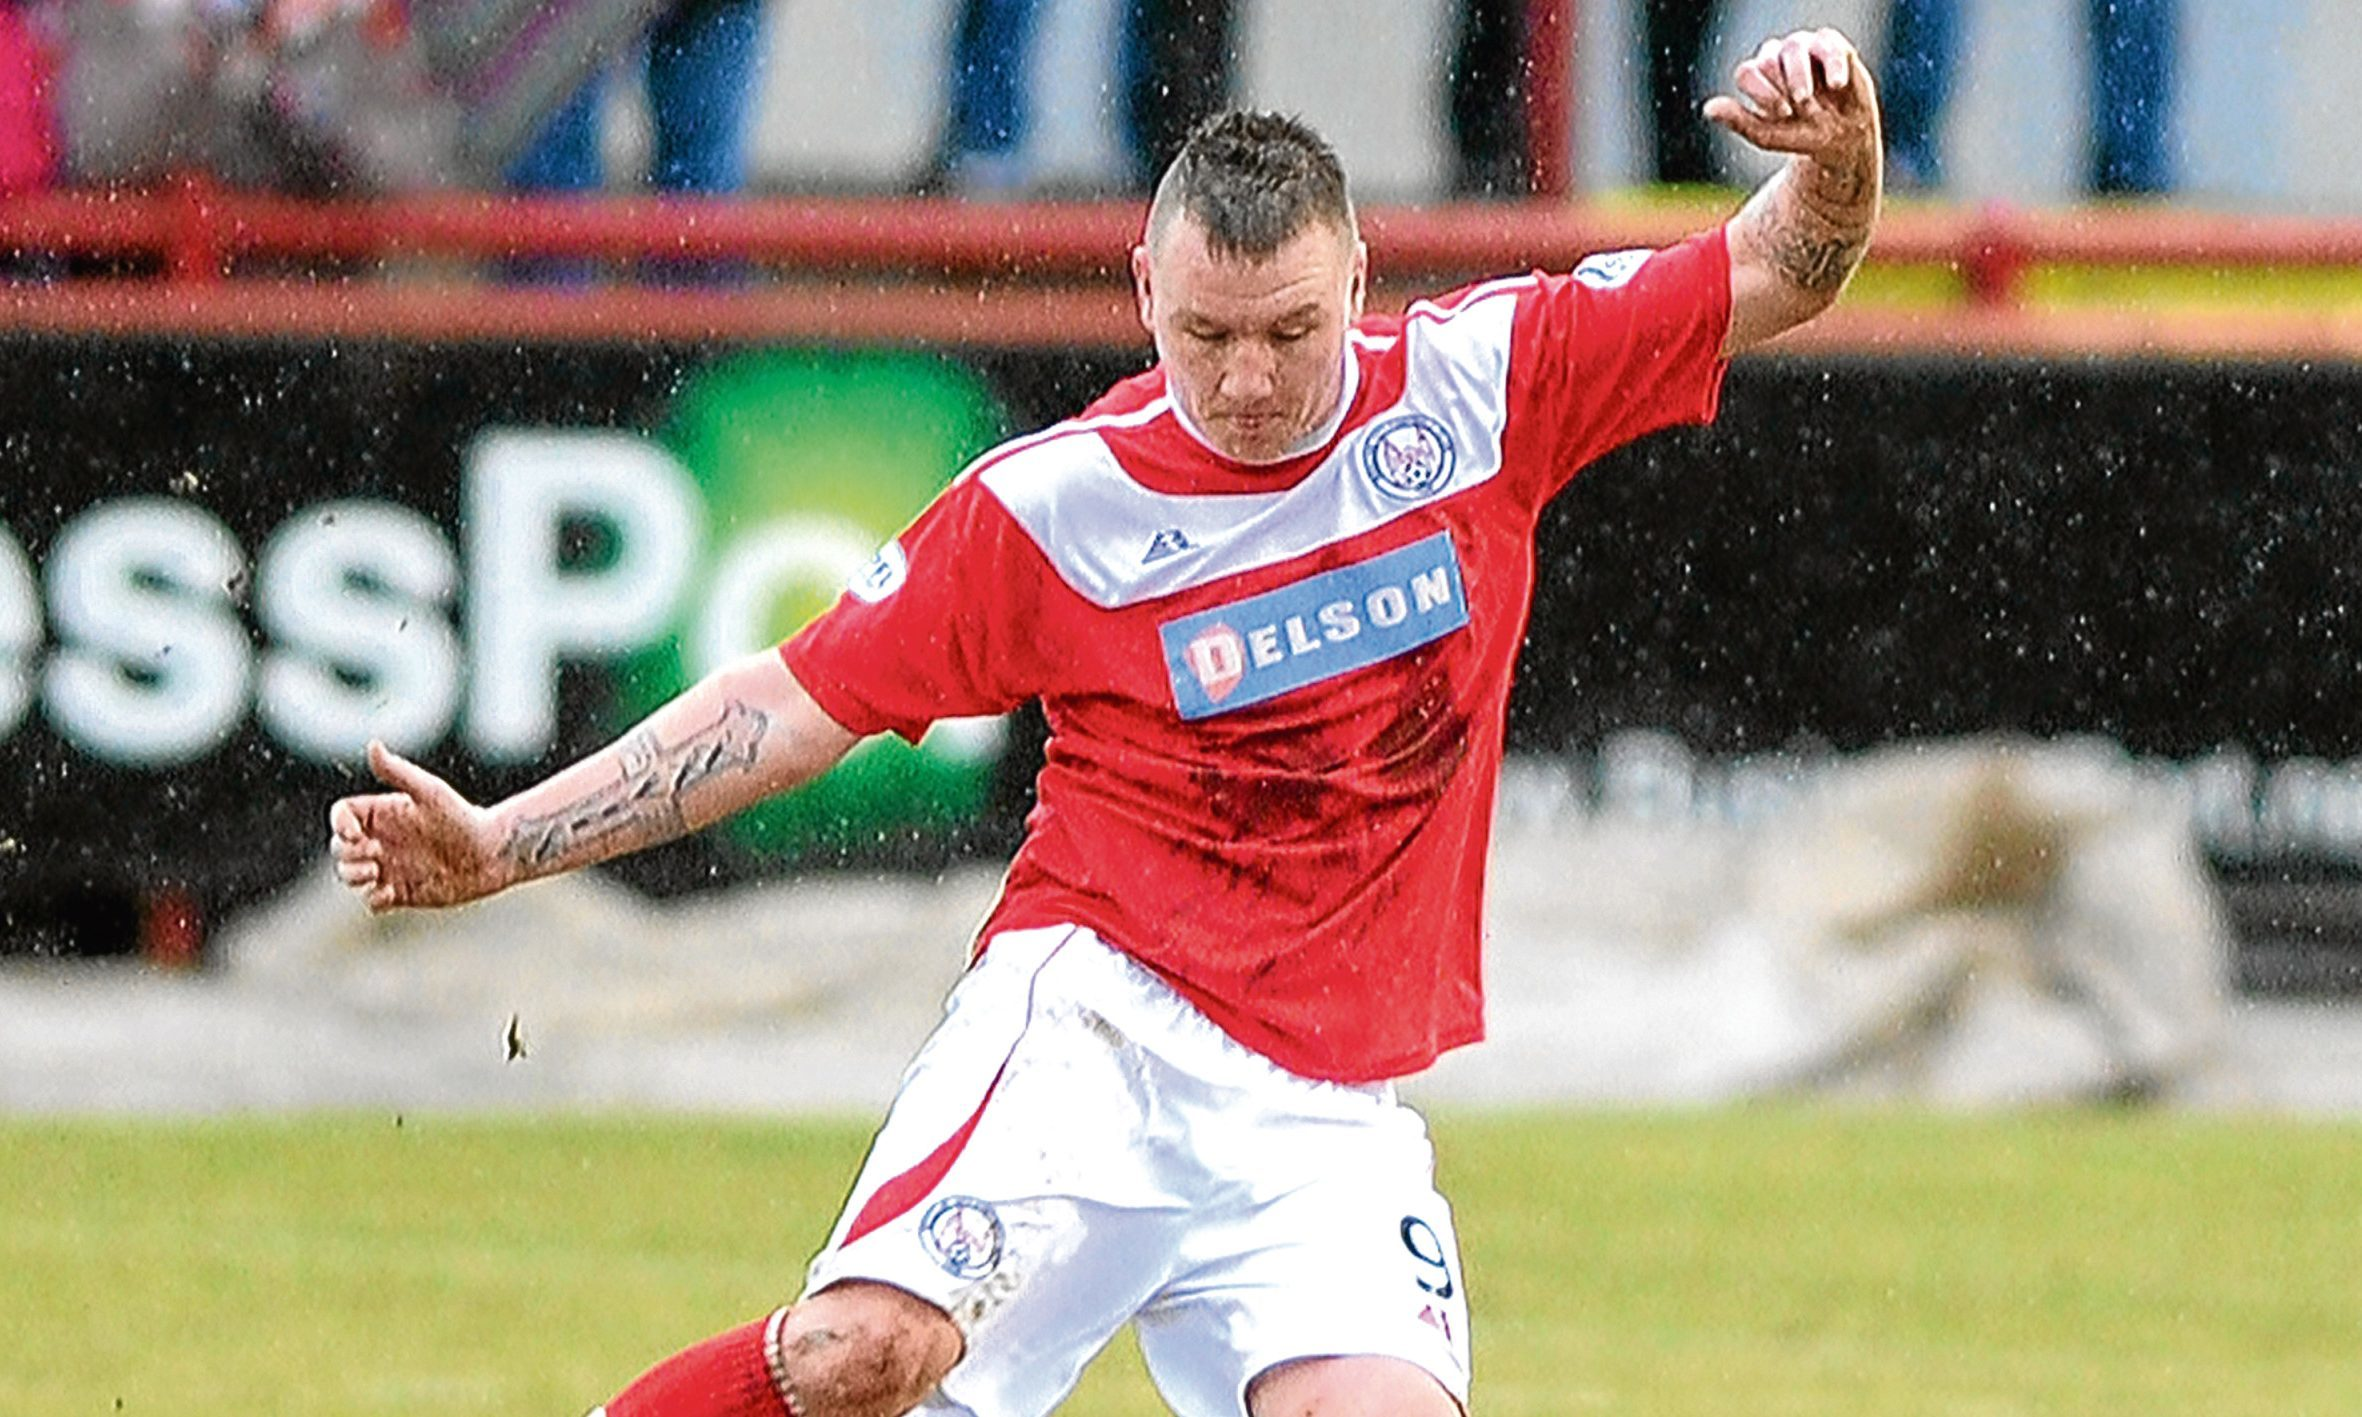 Andy Jackson of Brechin.